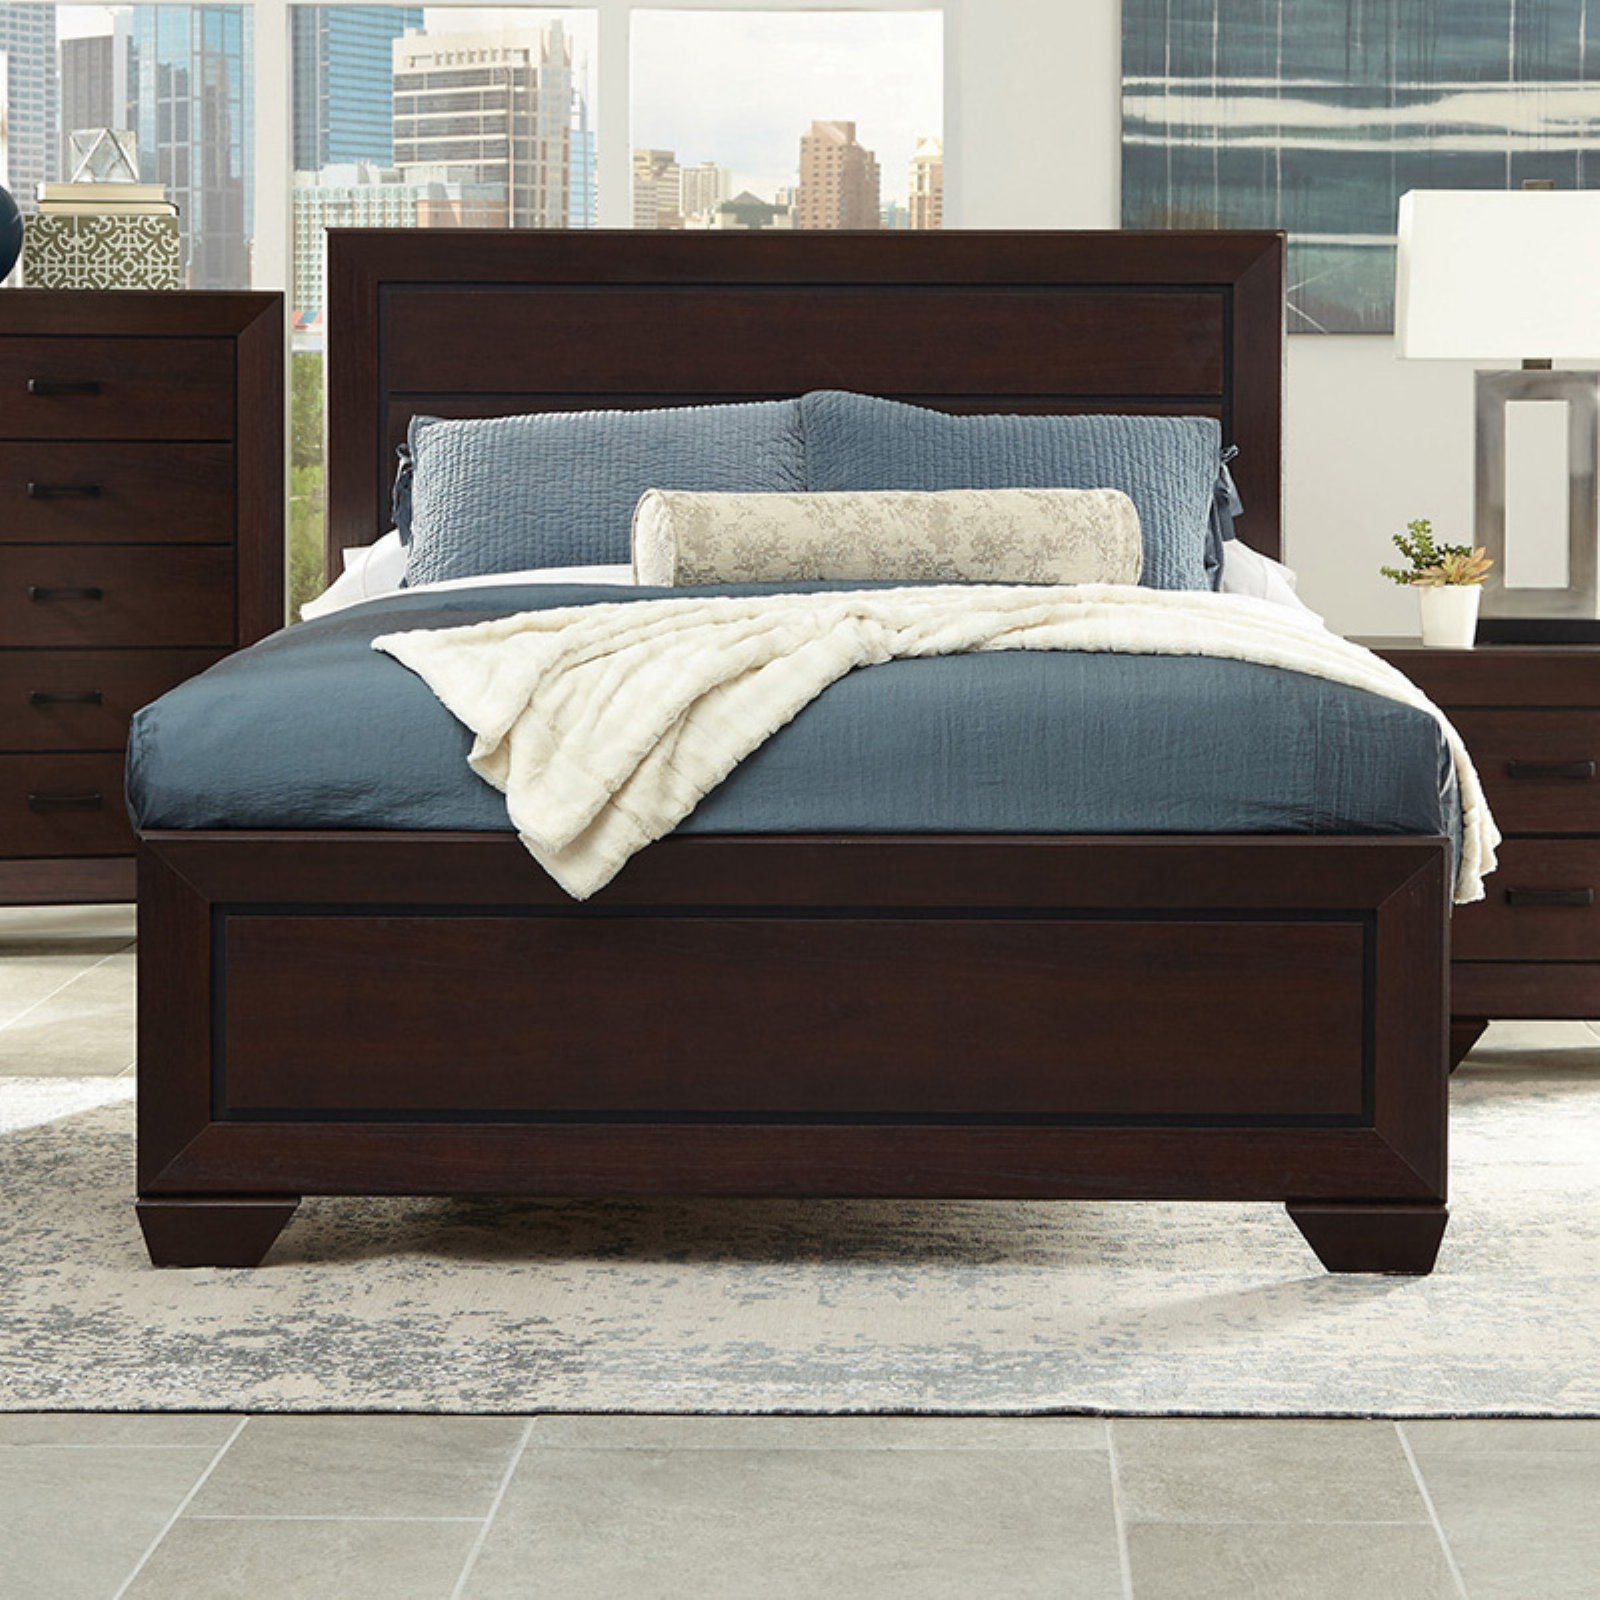 Coaster Furniture Fenbrook Panel Bed